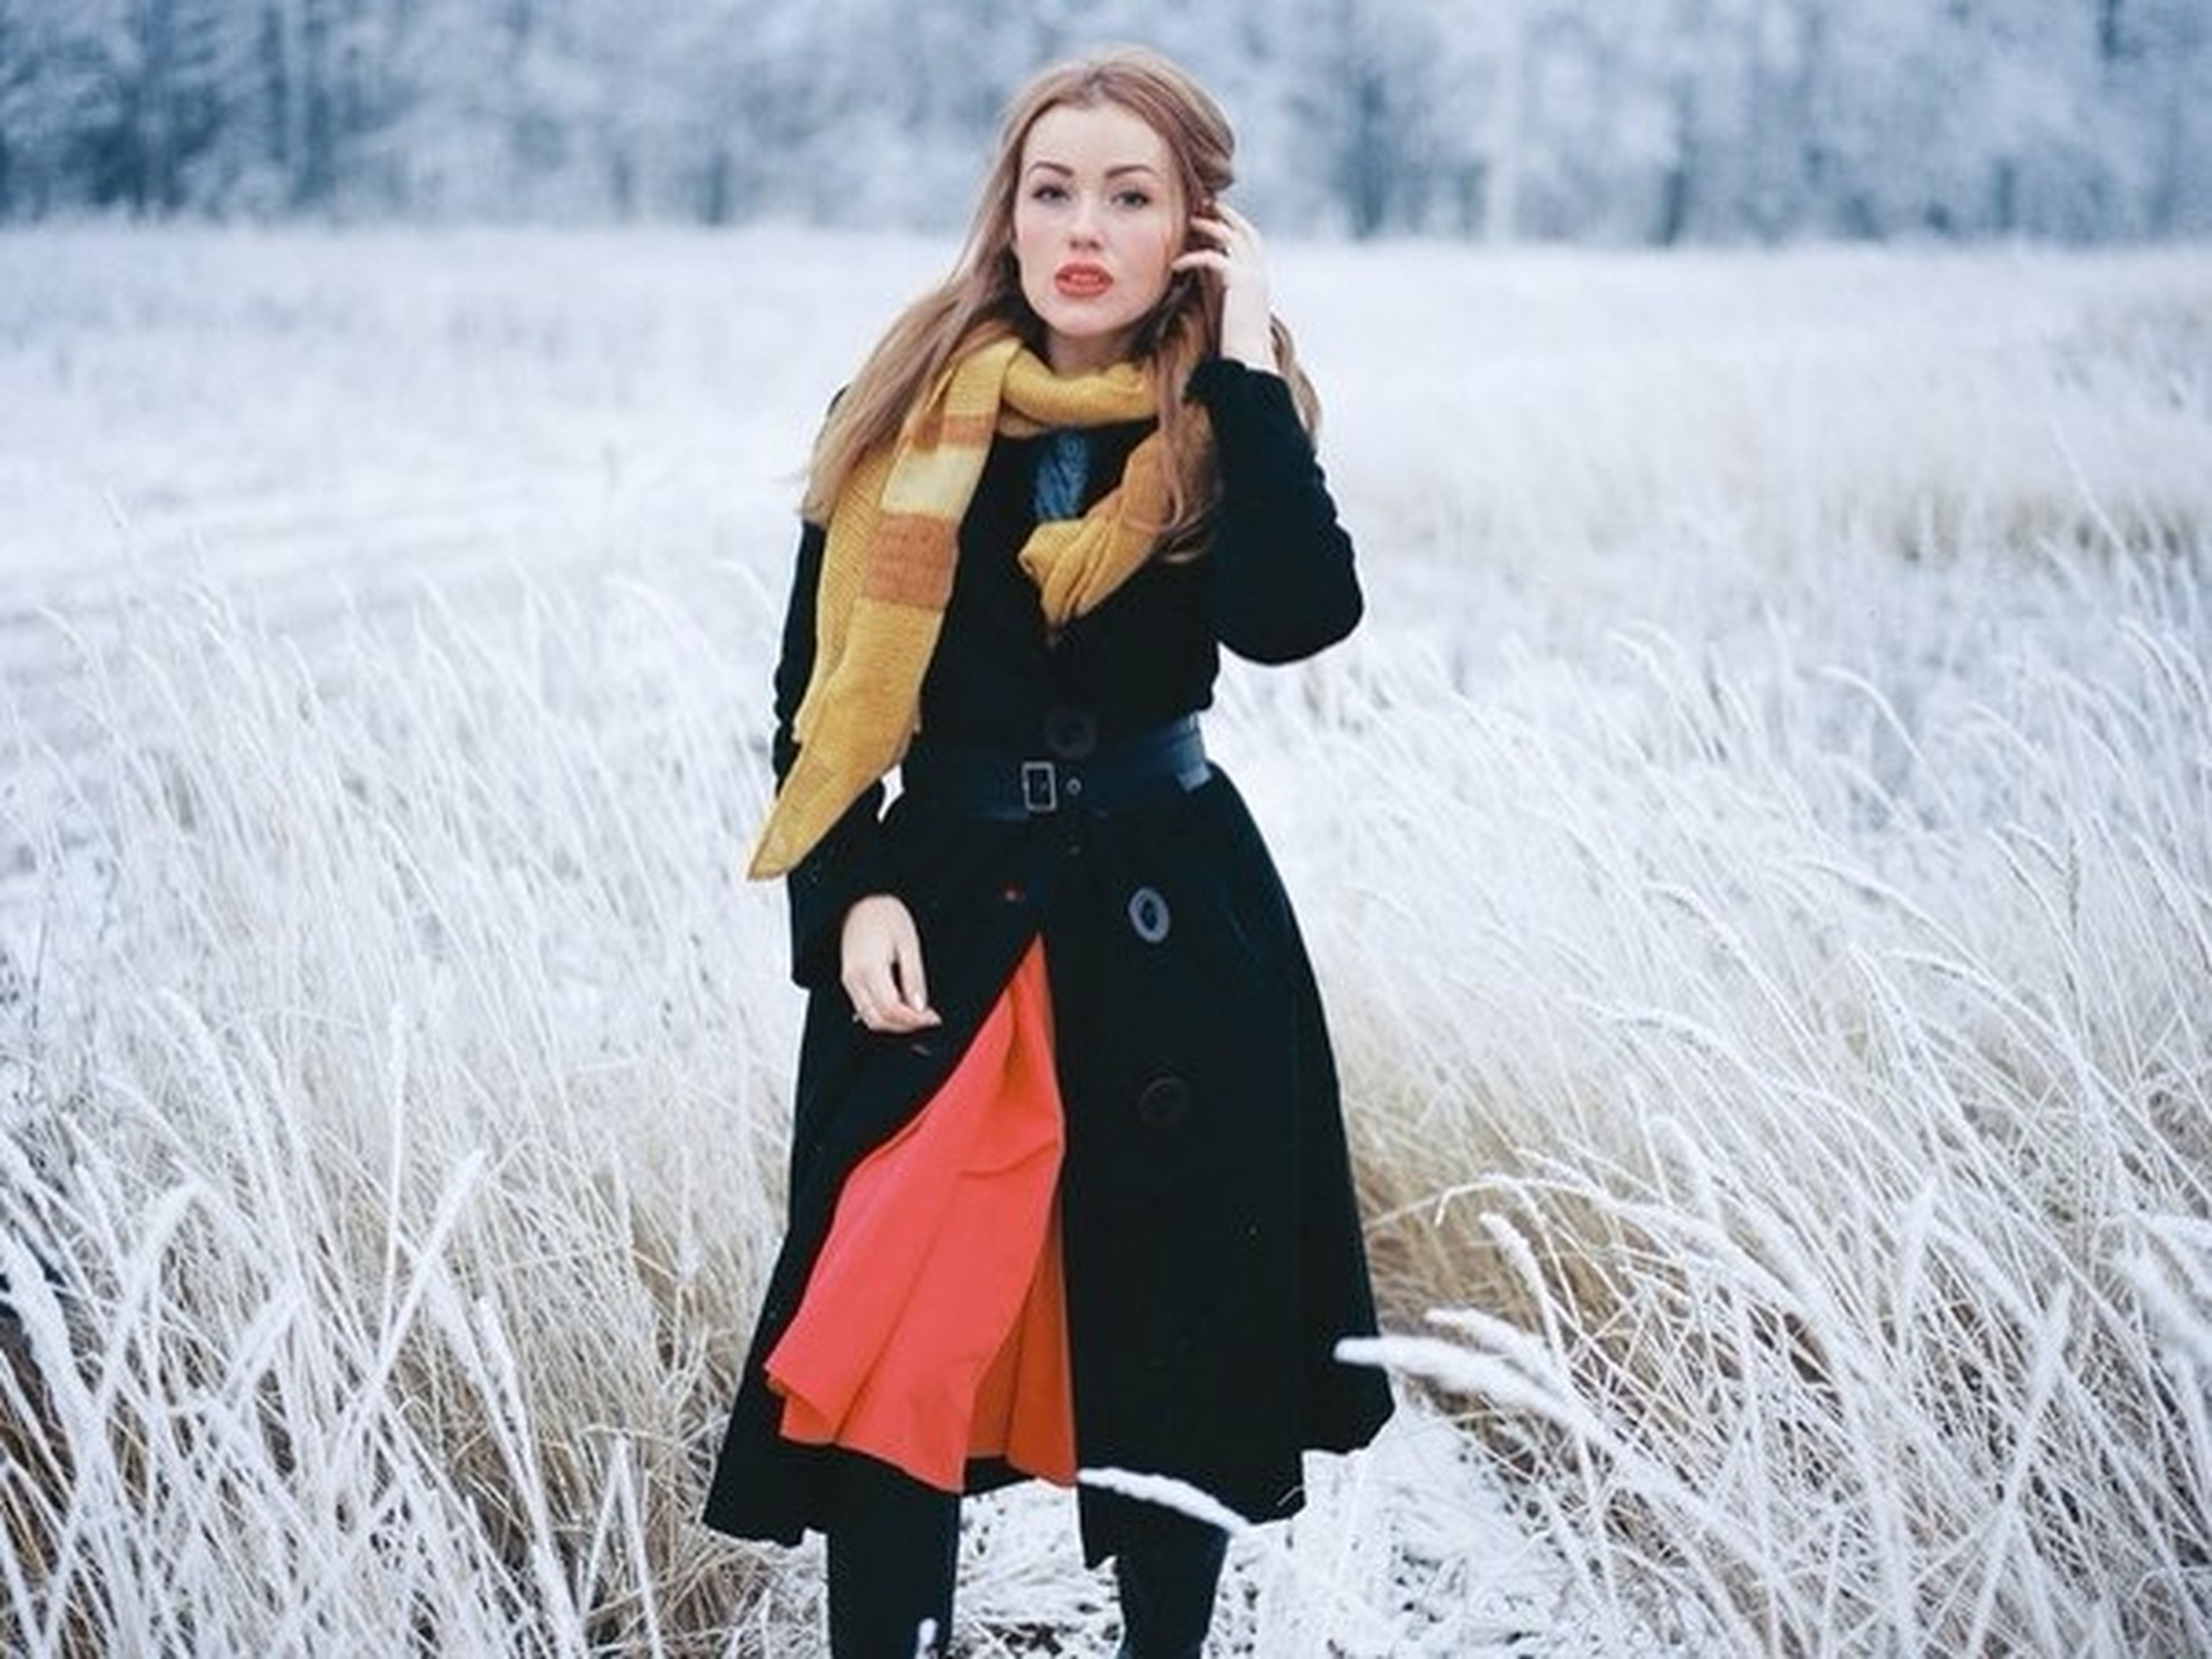 lifestyles, young adult, person, leisure activity, looking at camera, casual clothing, portrait, young women, smiling, winter, front view, three quarter length, standing, snow, cold temperature, full length, field, warm clothing